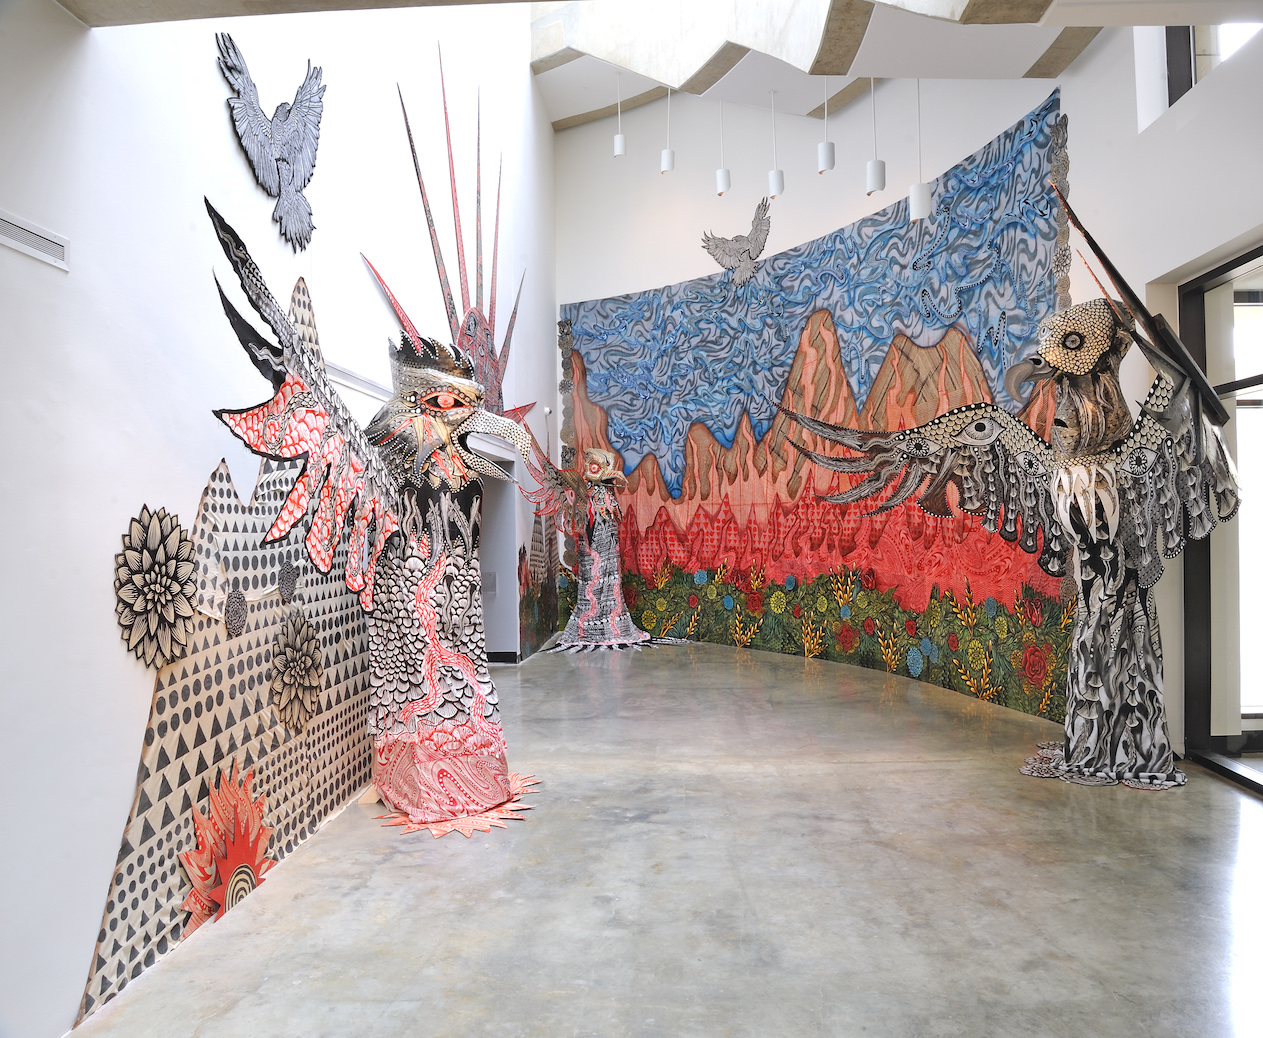 Installation view with screen-printed vultures and wall decoration